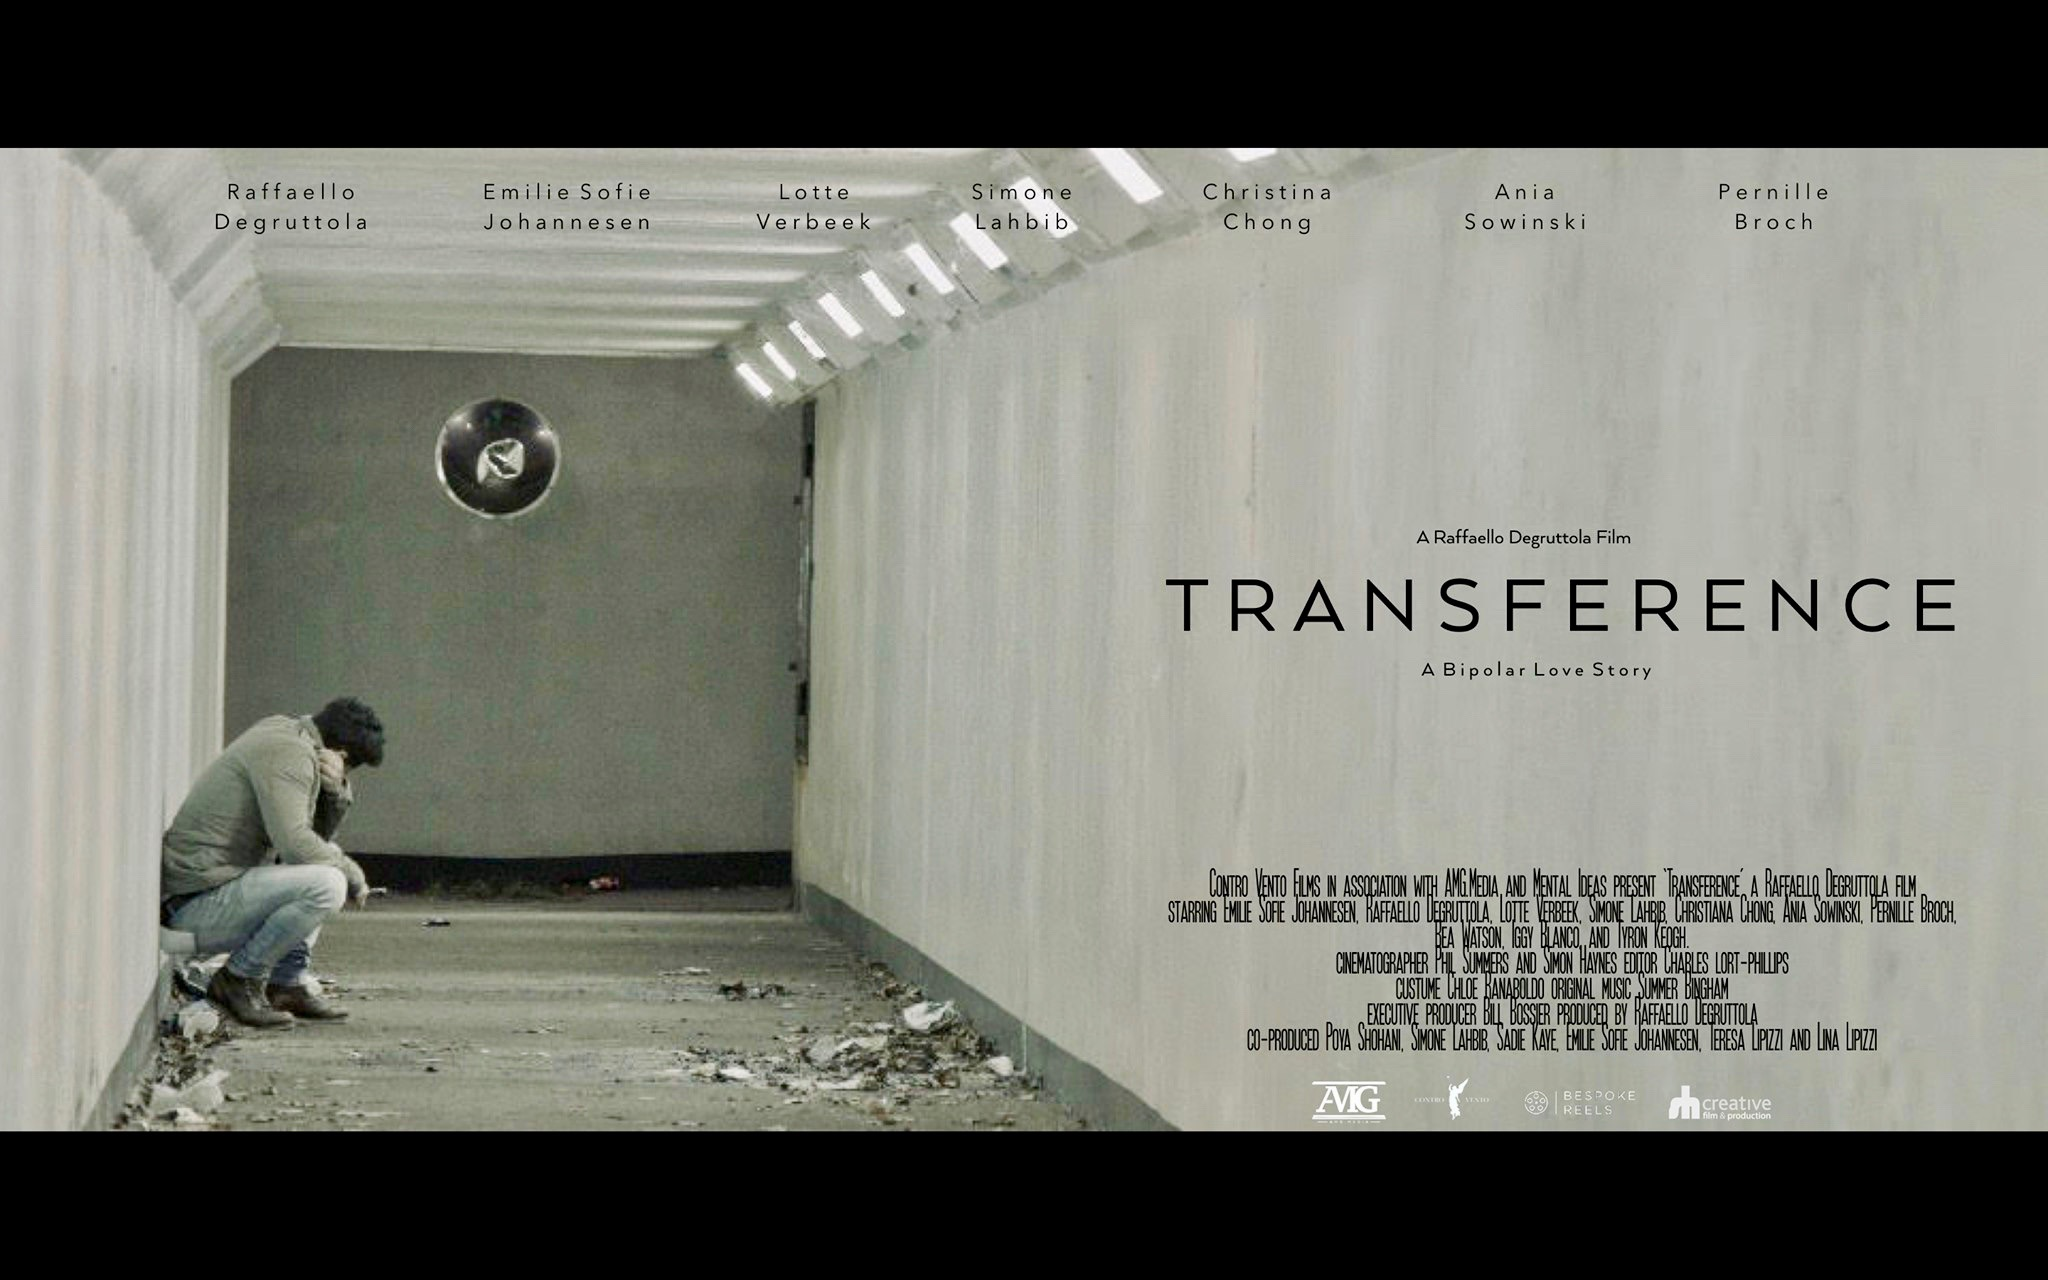 Transference: A Bipolar Love Story